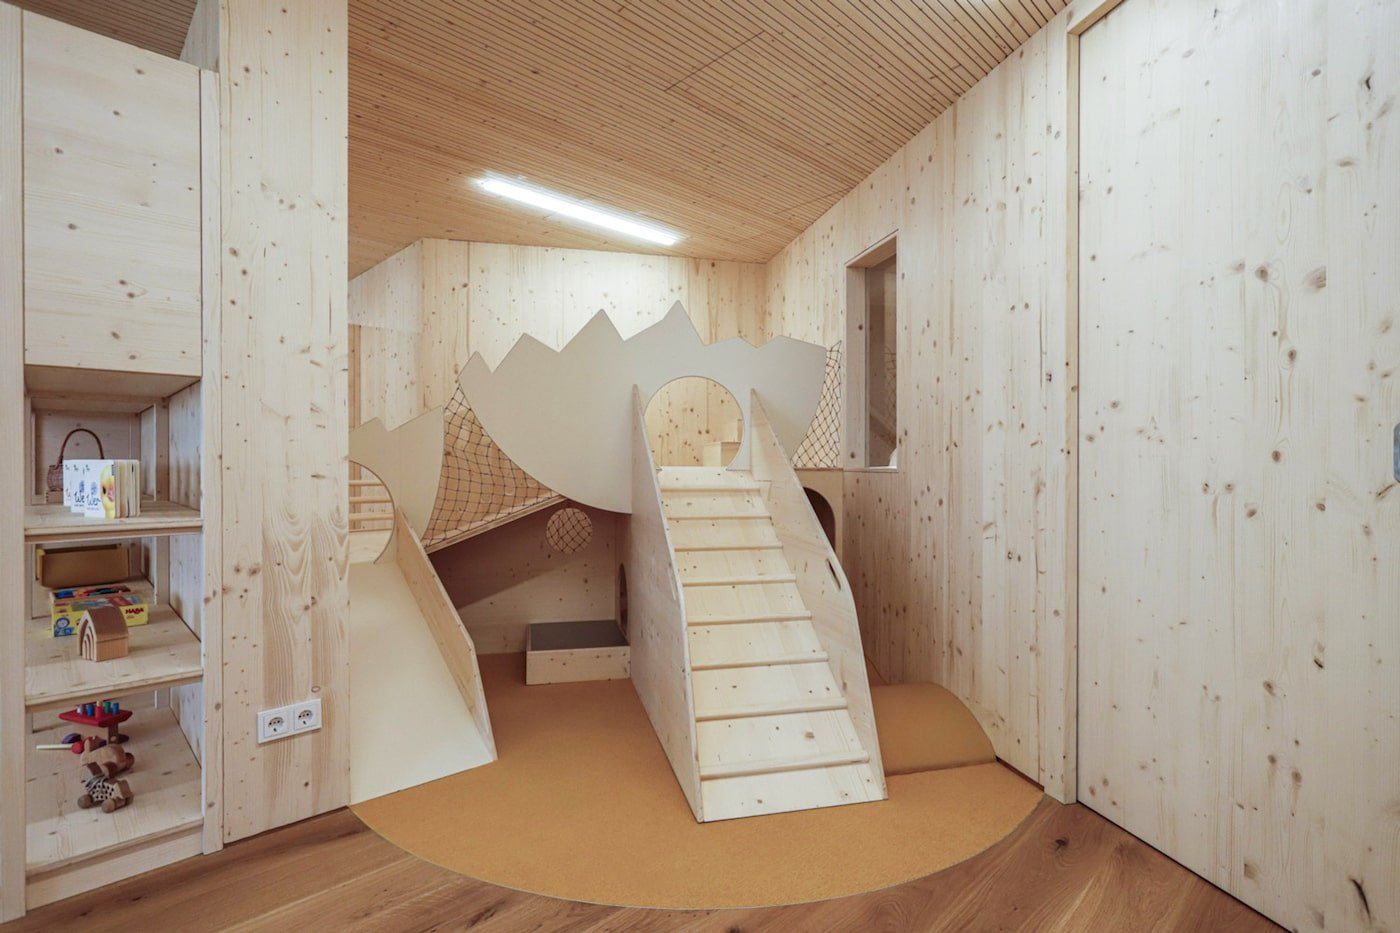 Timber limbing equipment in sustainable childcare centre